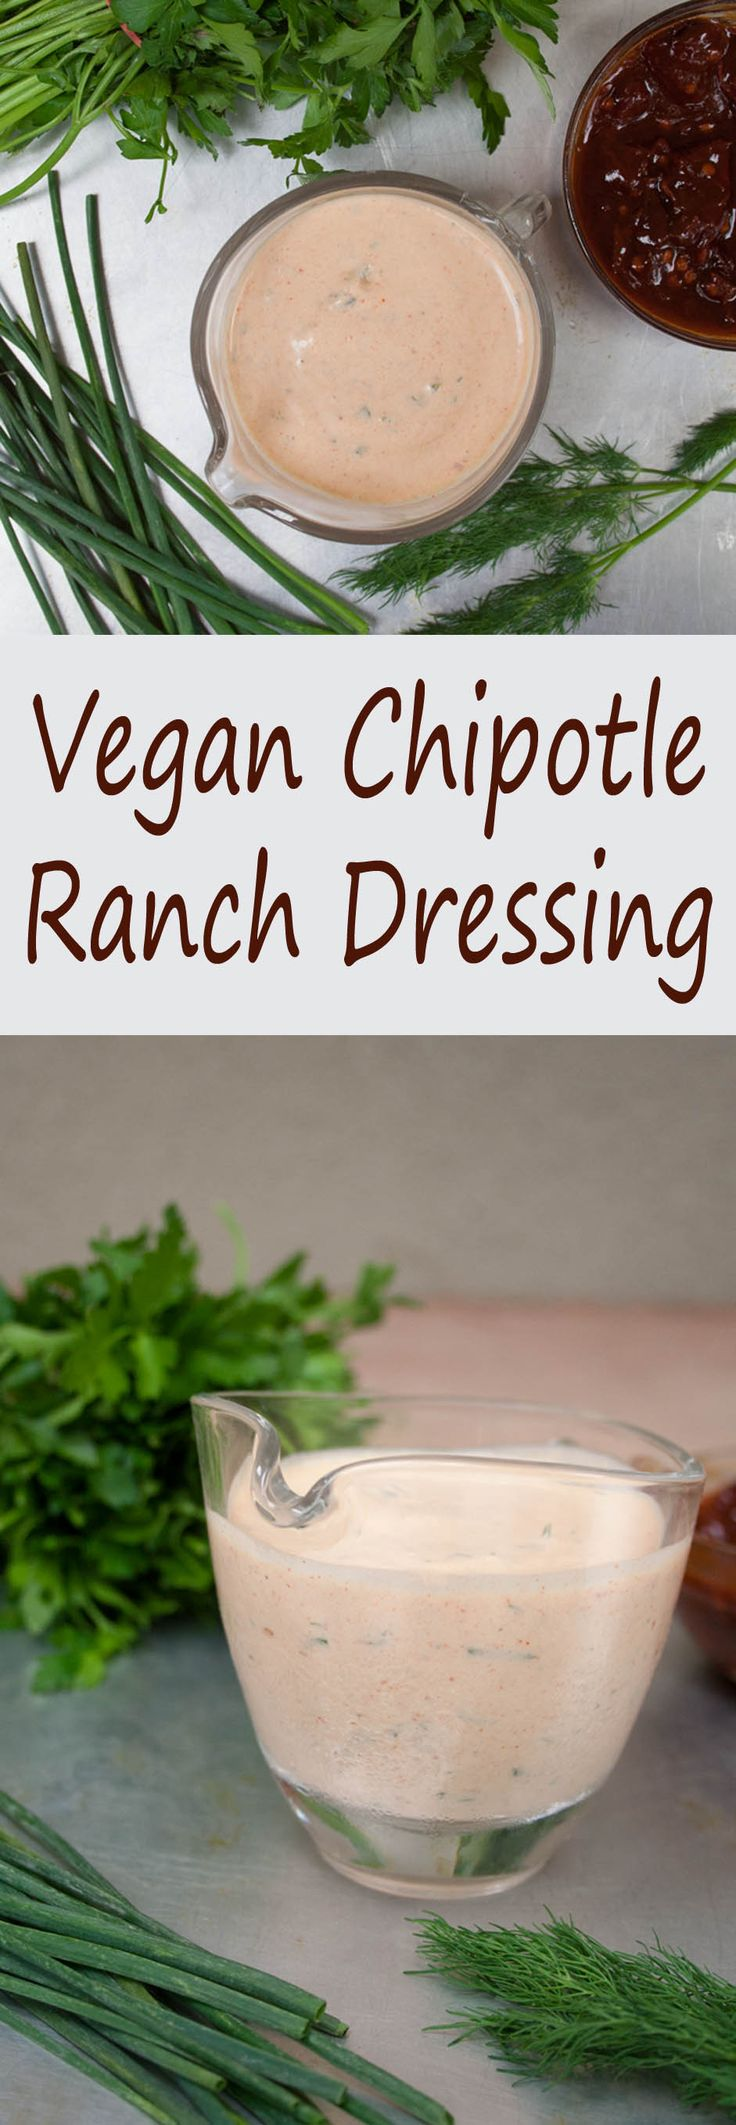 Vegan Chipotle Ranch Dressing (vegan, gluten free) - This spicy, smoky dressing…